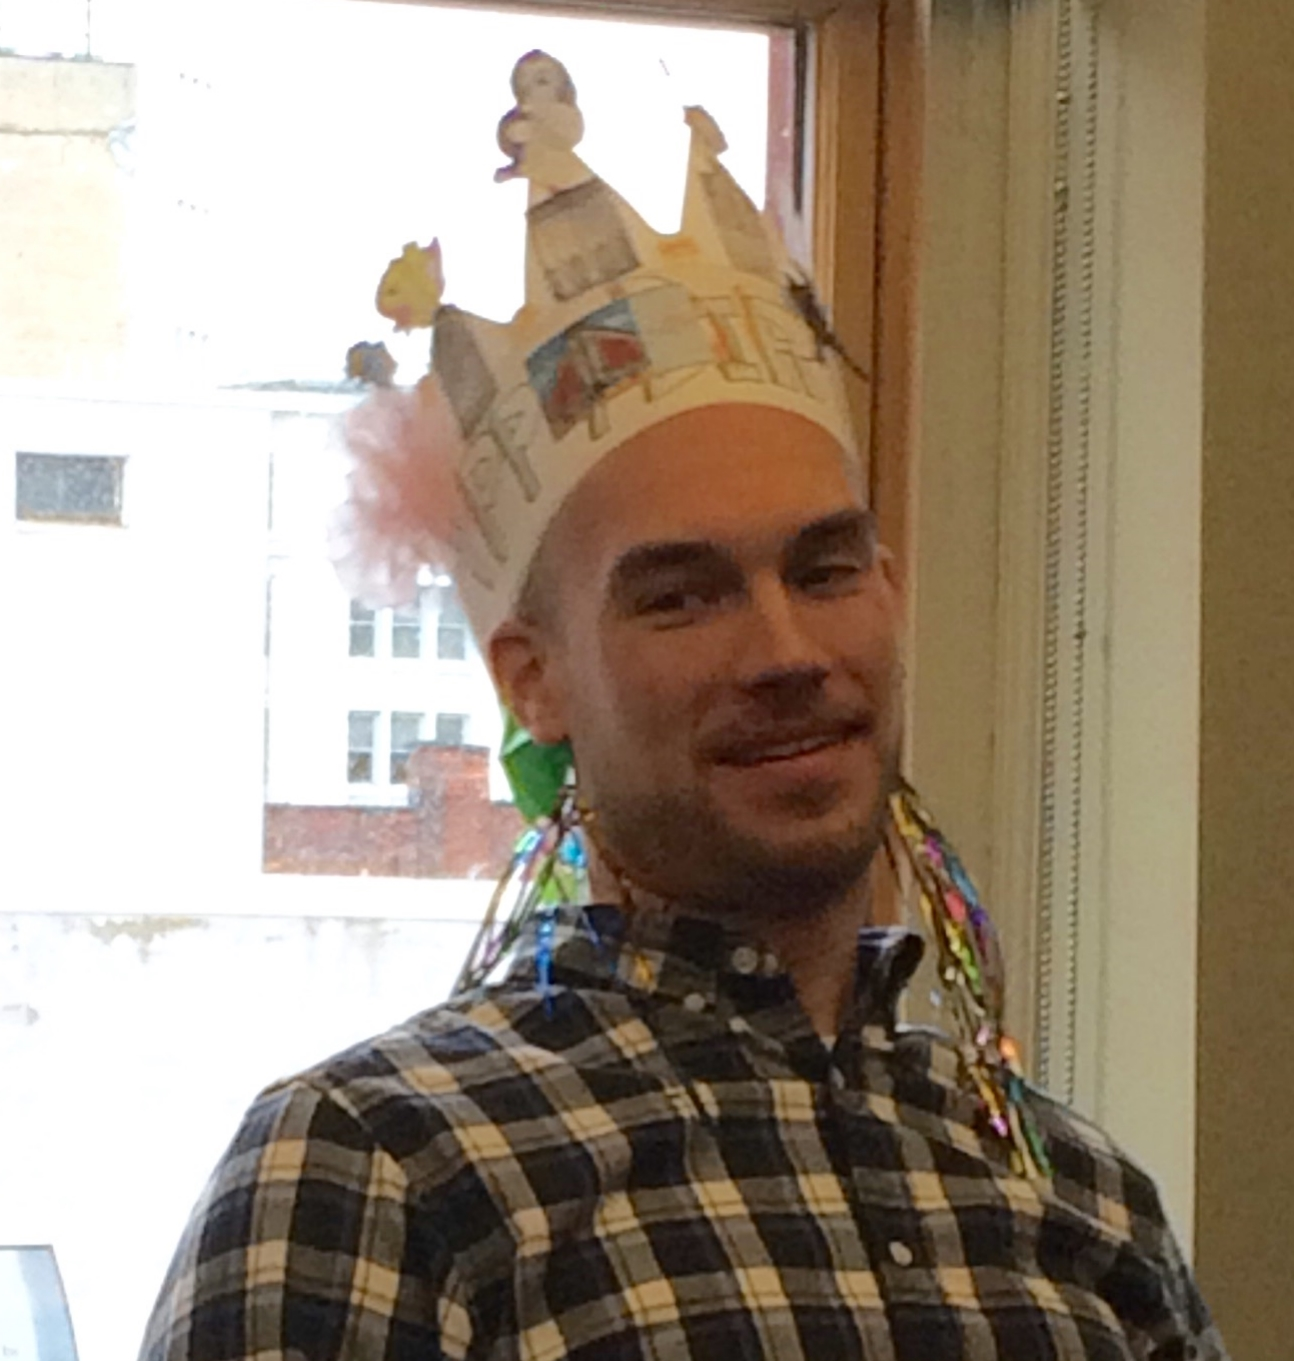 The CWM Birthday Crown just gets better over time, don't you think Jon?!